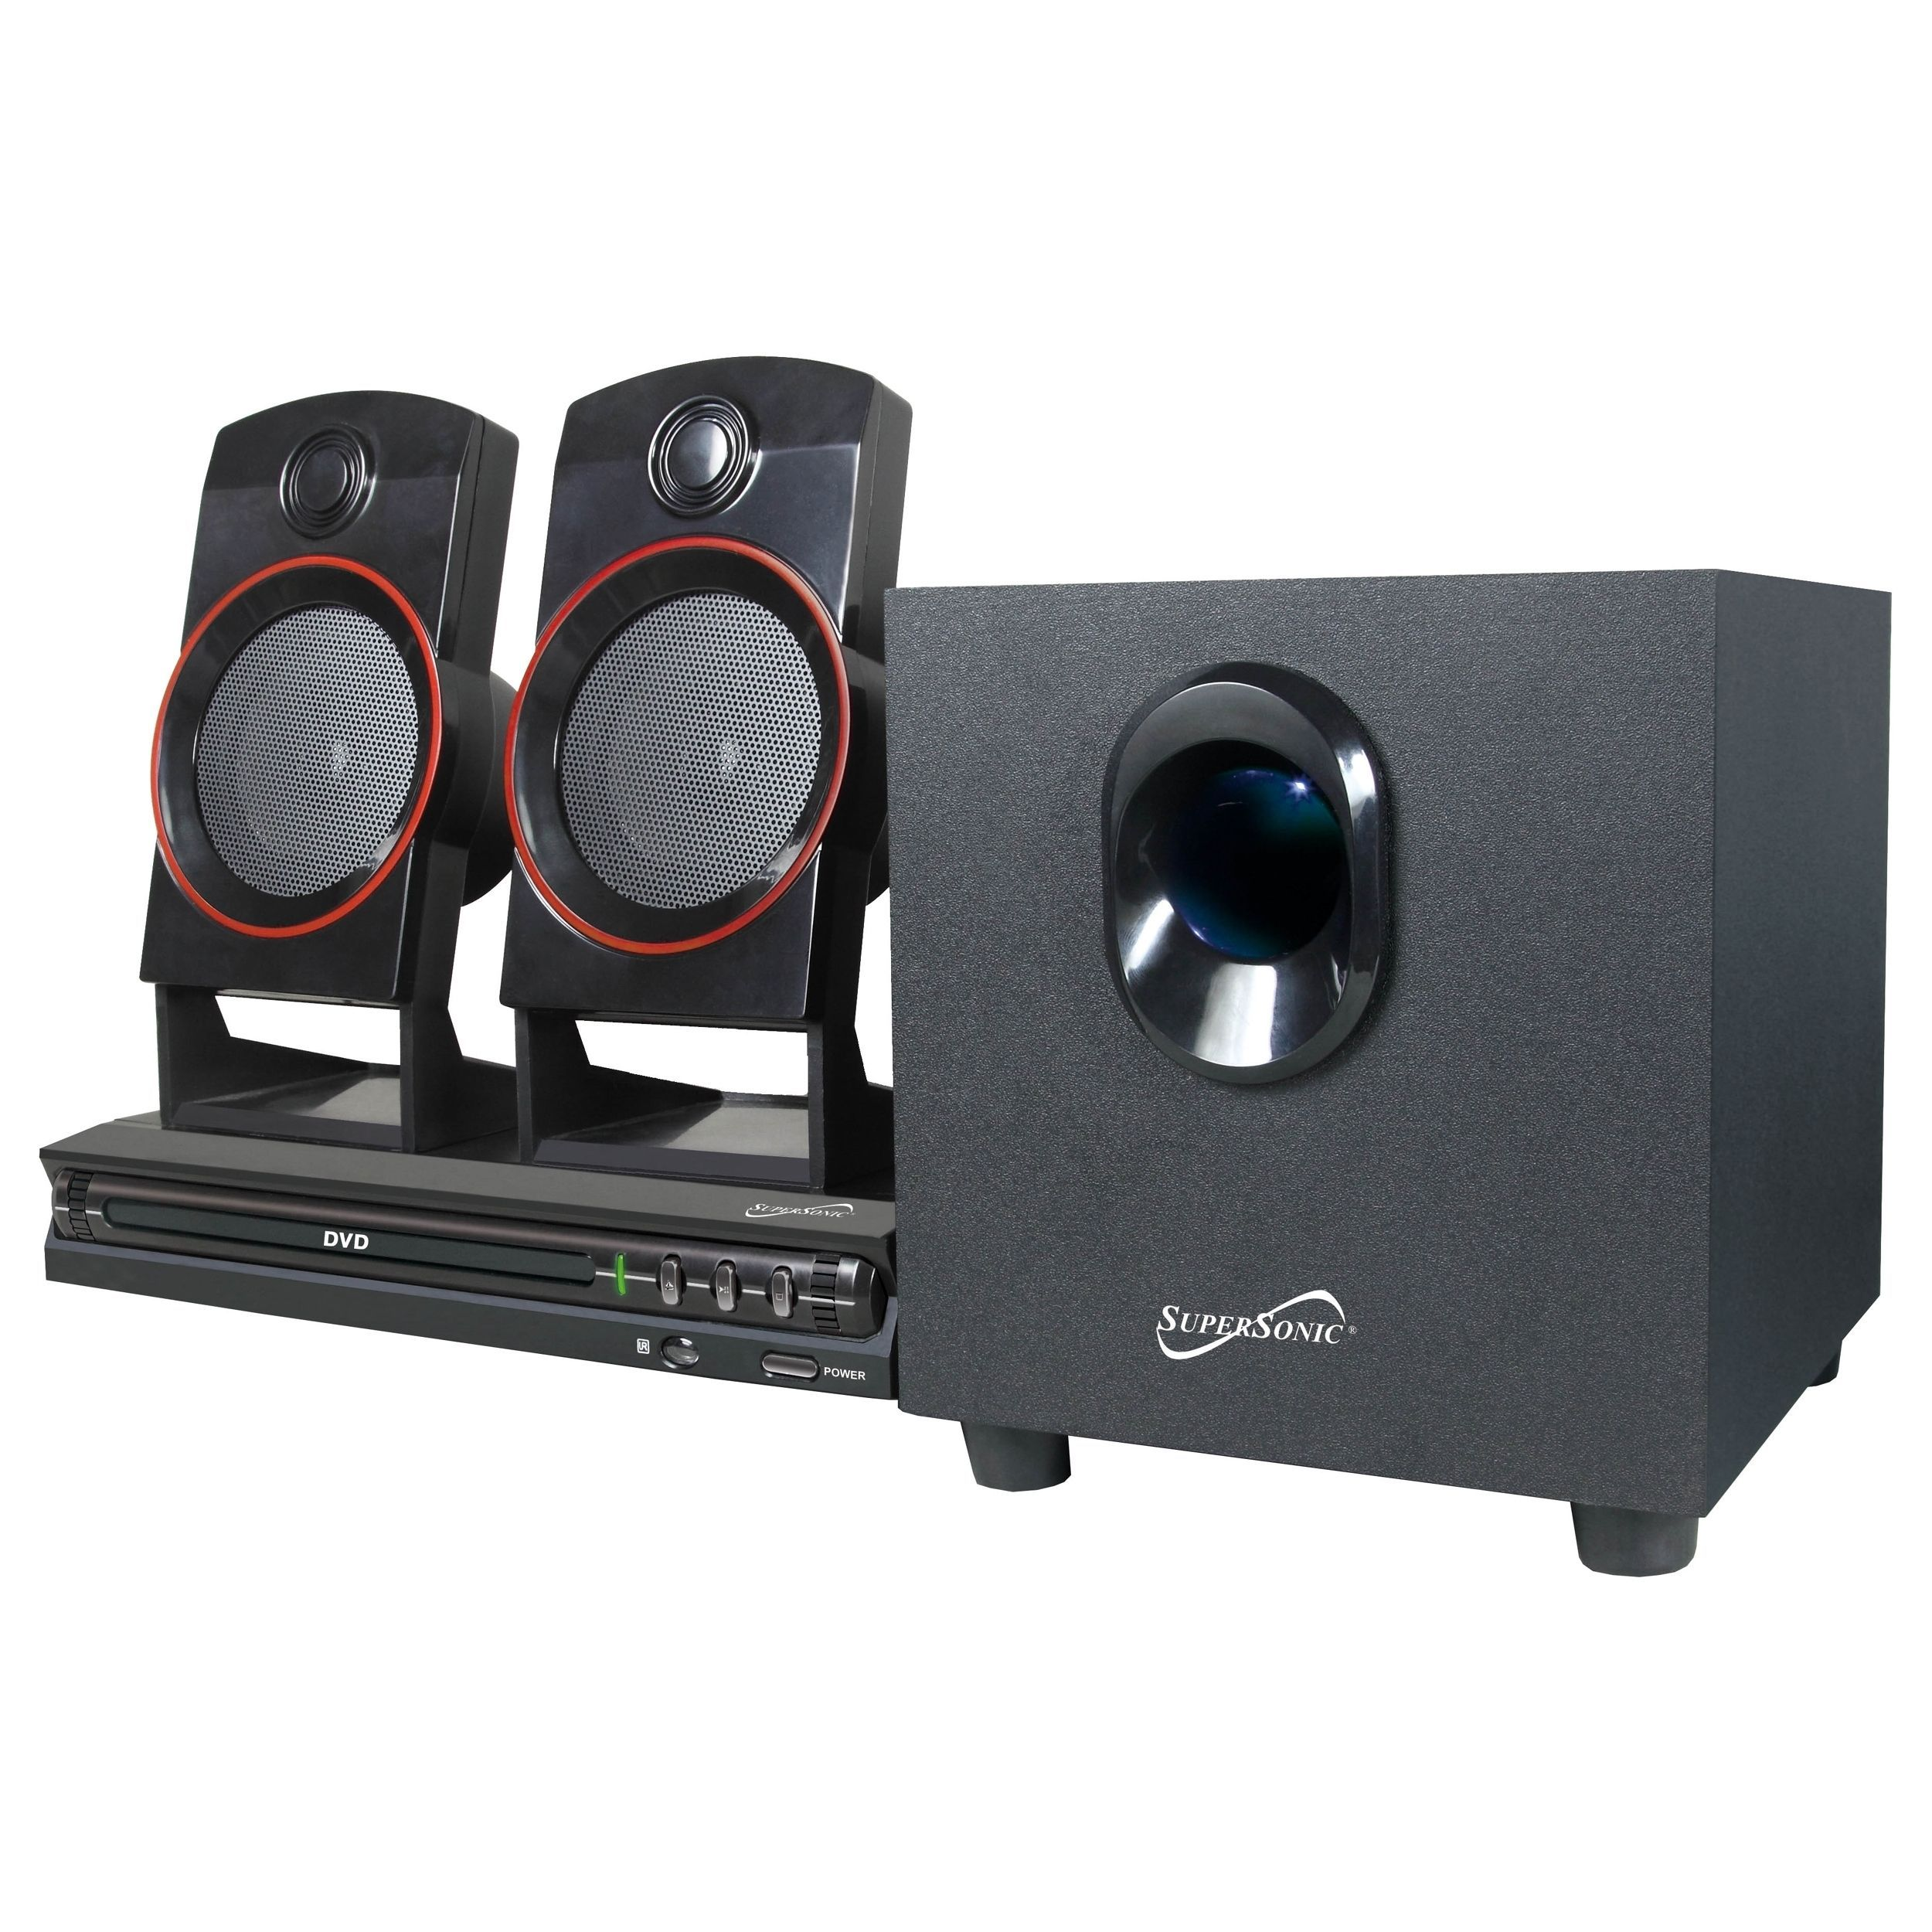 Supersonic Sc 35ht 2 1 Home Theater System 11 W Rms Dvd Player Dvd Home Theater System Home Theater System Surround Sound Systems